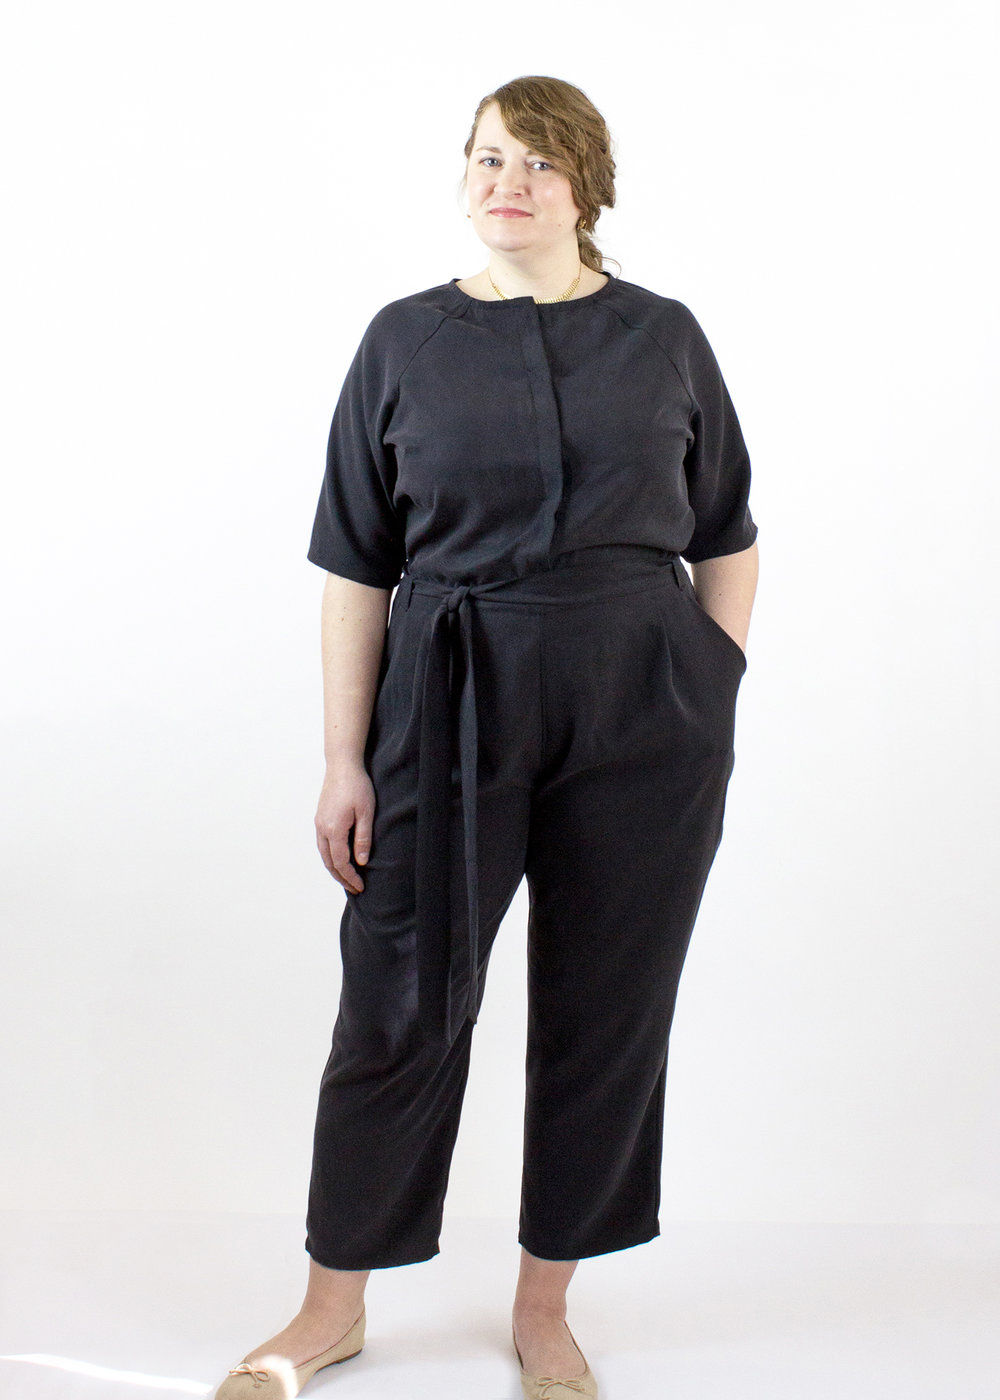 We'll have a limited amount of London Jumpsuits!  Feel free to contact us to reserve or request your size to try on!